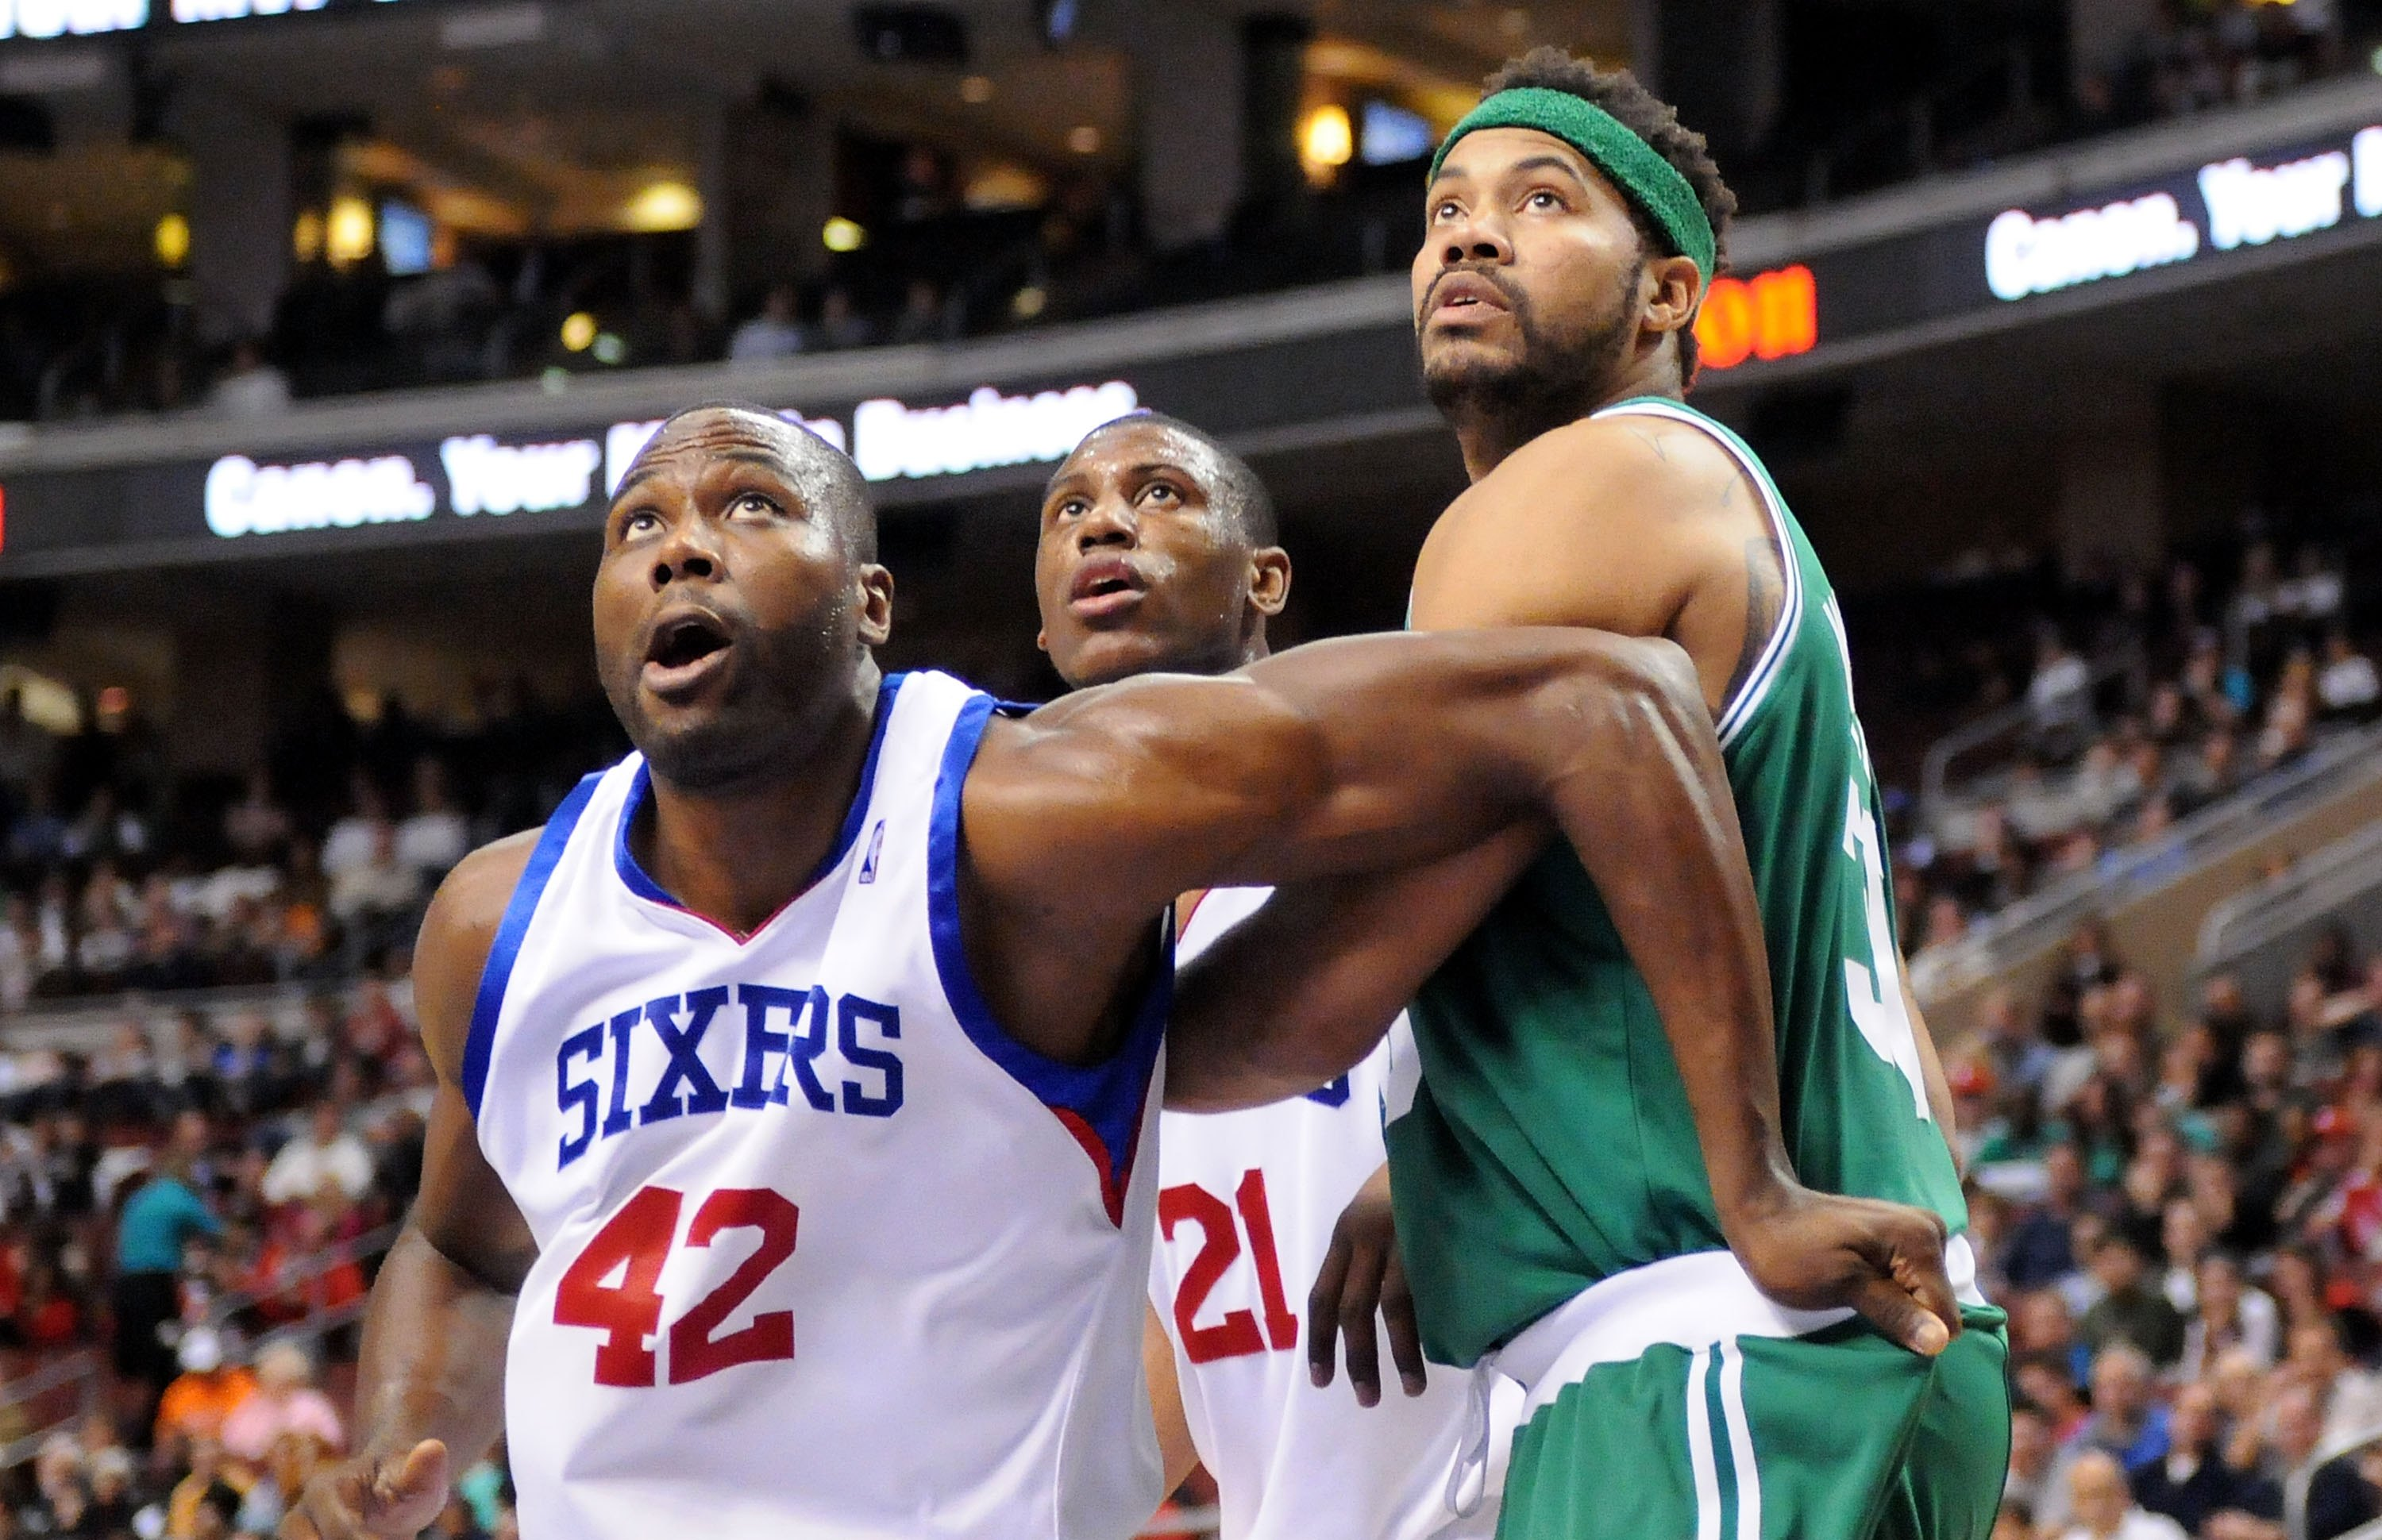 Elton Brand shows he can still hold his own in the paint